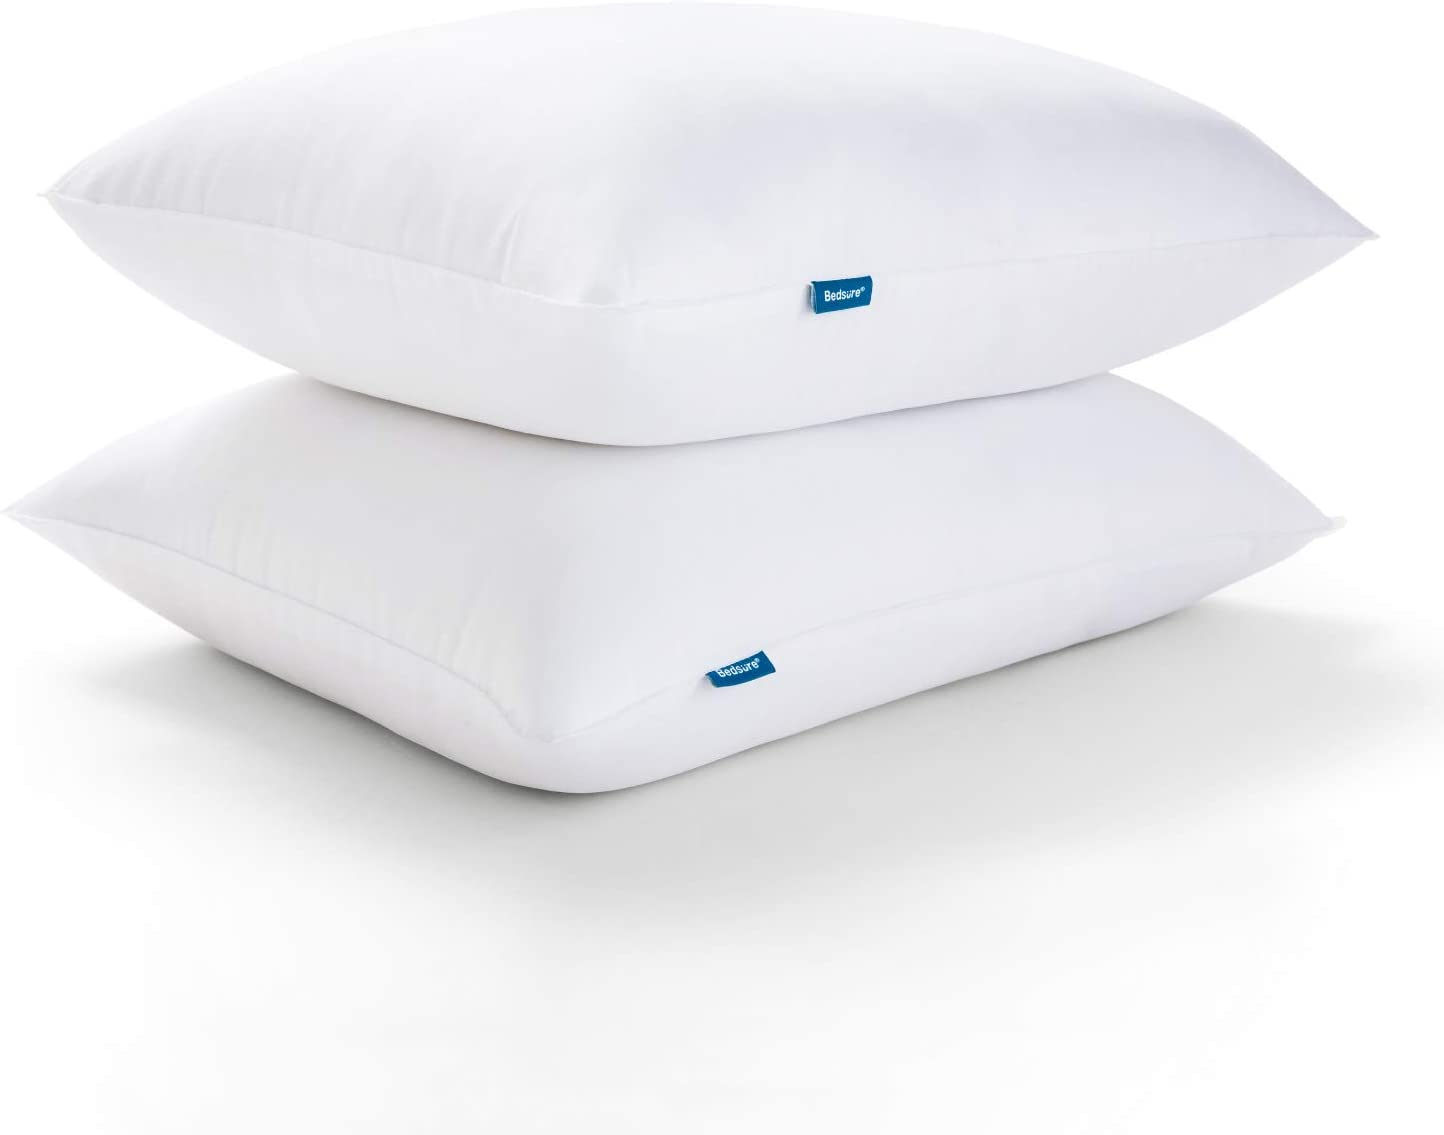 Bedsure King Pillows for Sleeping, Bed Pillows Hotel Quality, Soft Down Alternative Pillows Set of 2, Hypoallergenic Pillow for Side and Back Sleeper (Queen, 20x36 inches, 2 Pack)